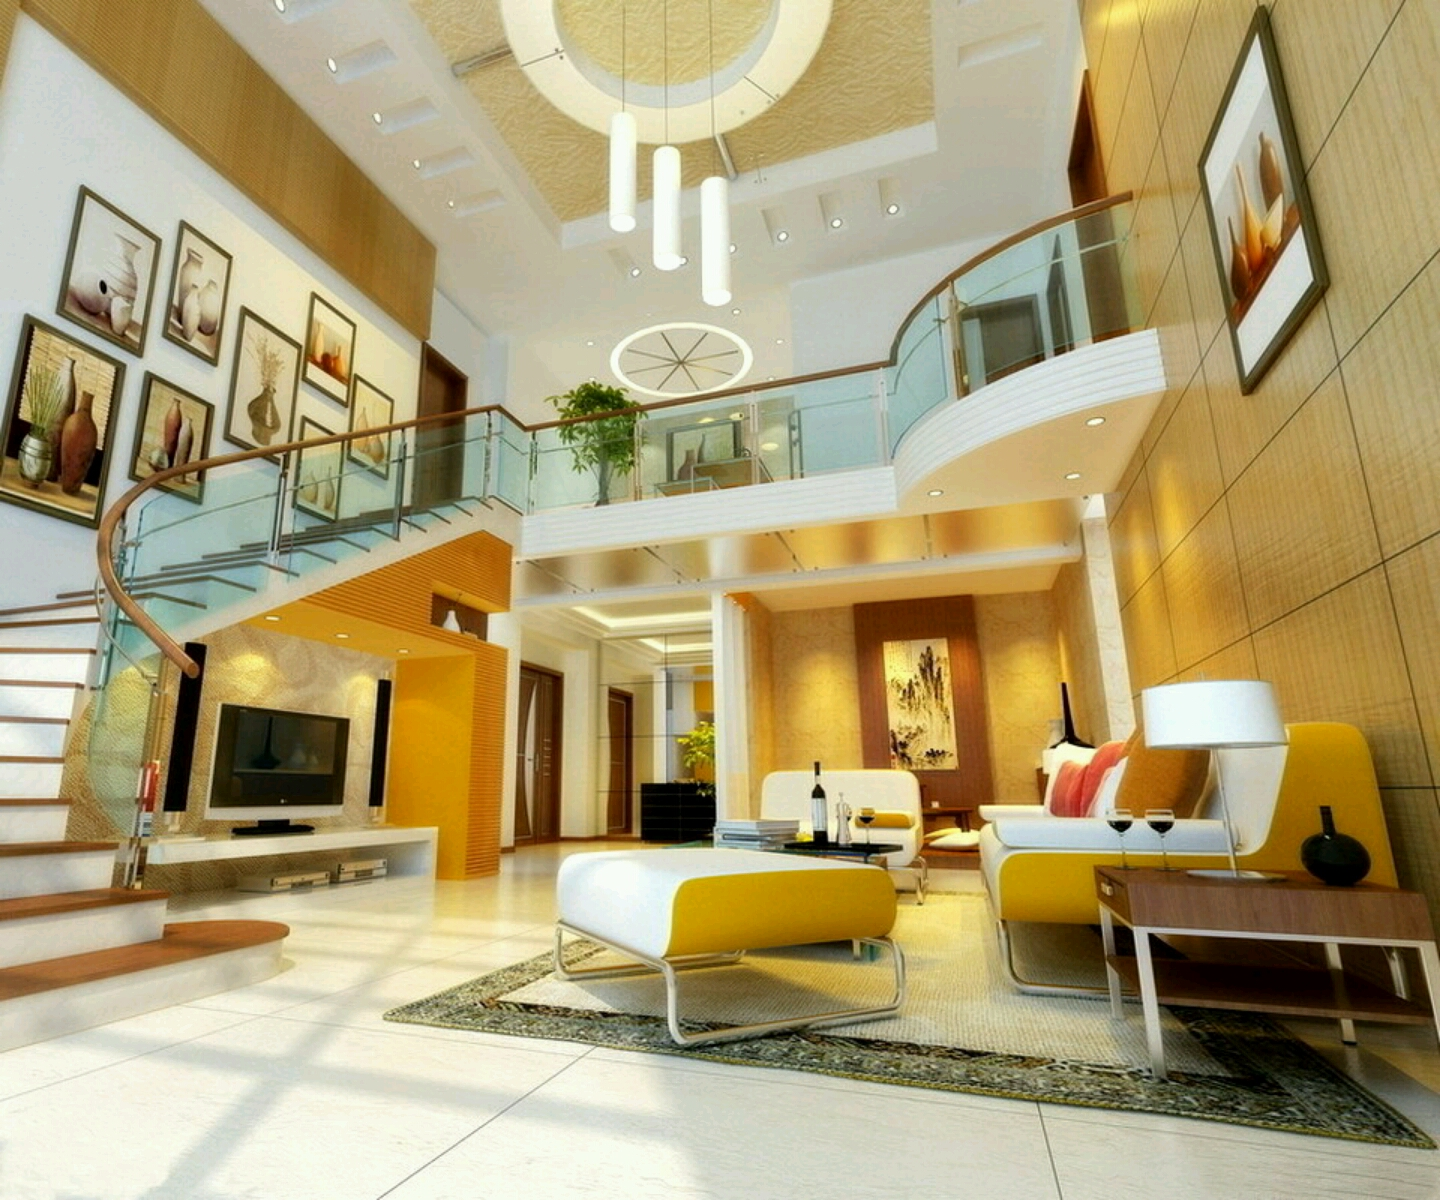 Modern Interior Decoration Living Rooms Ceiling Designs: Modern Interior Decoration Living Rooms Ceiling Designs